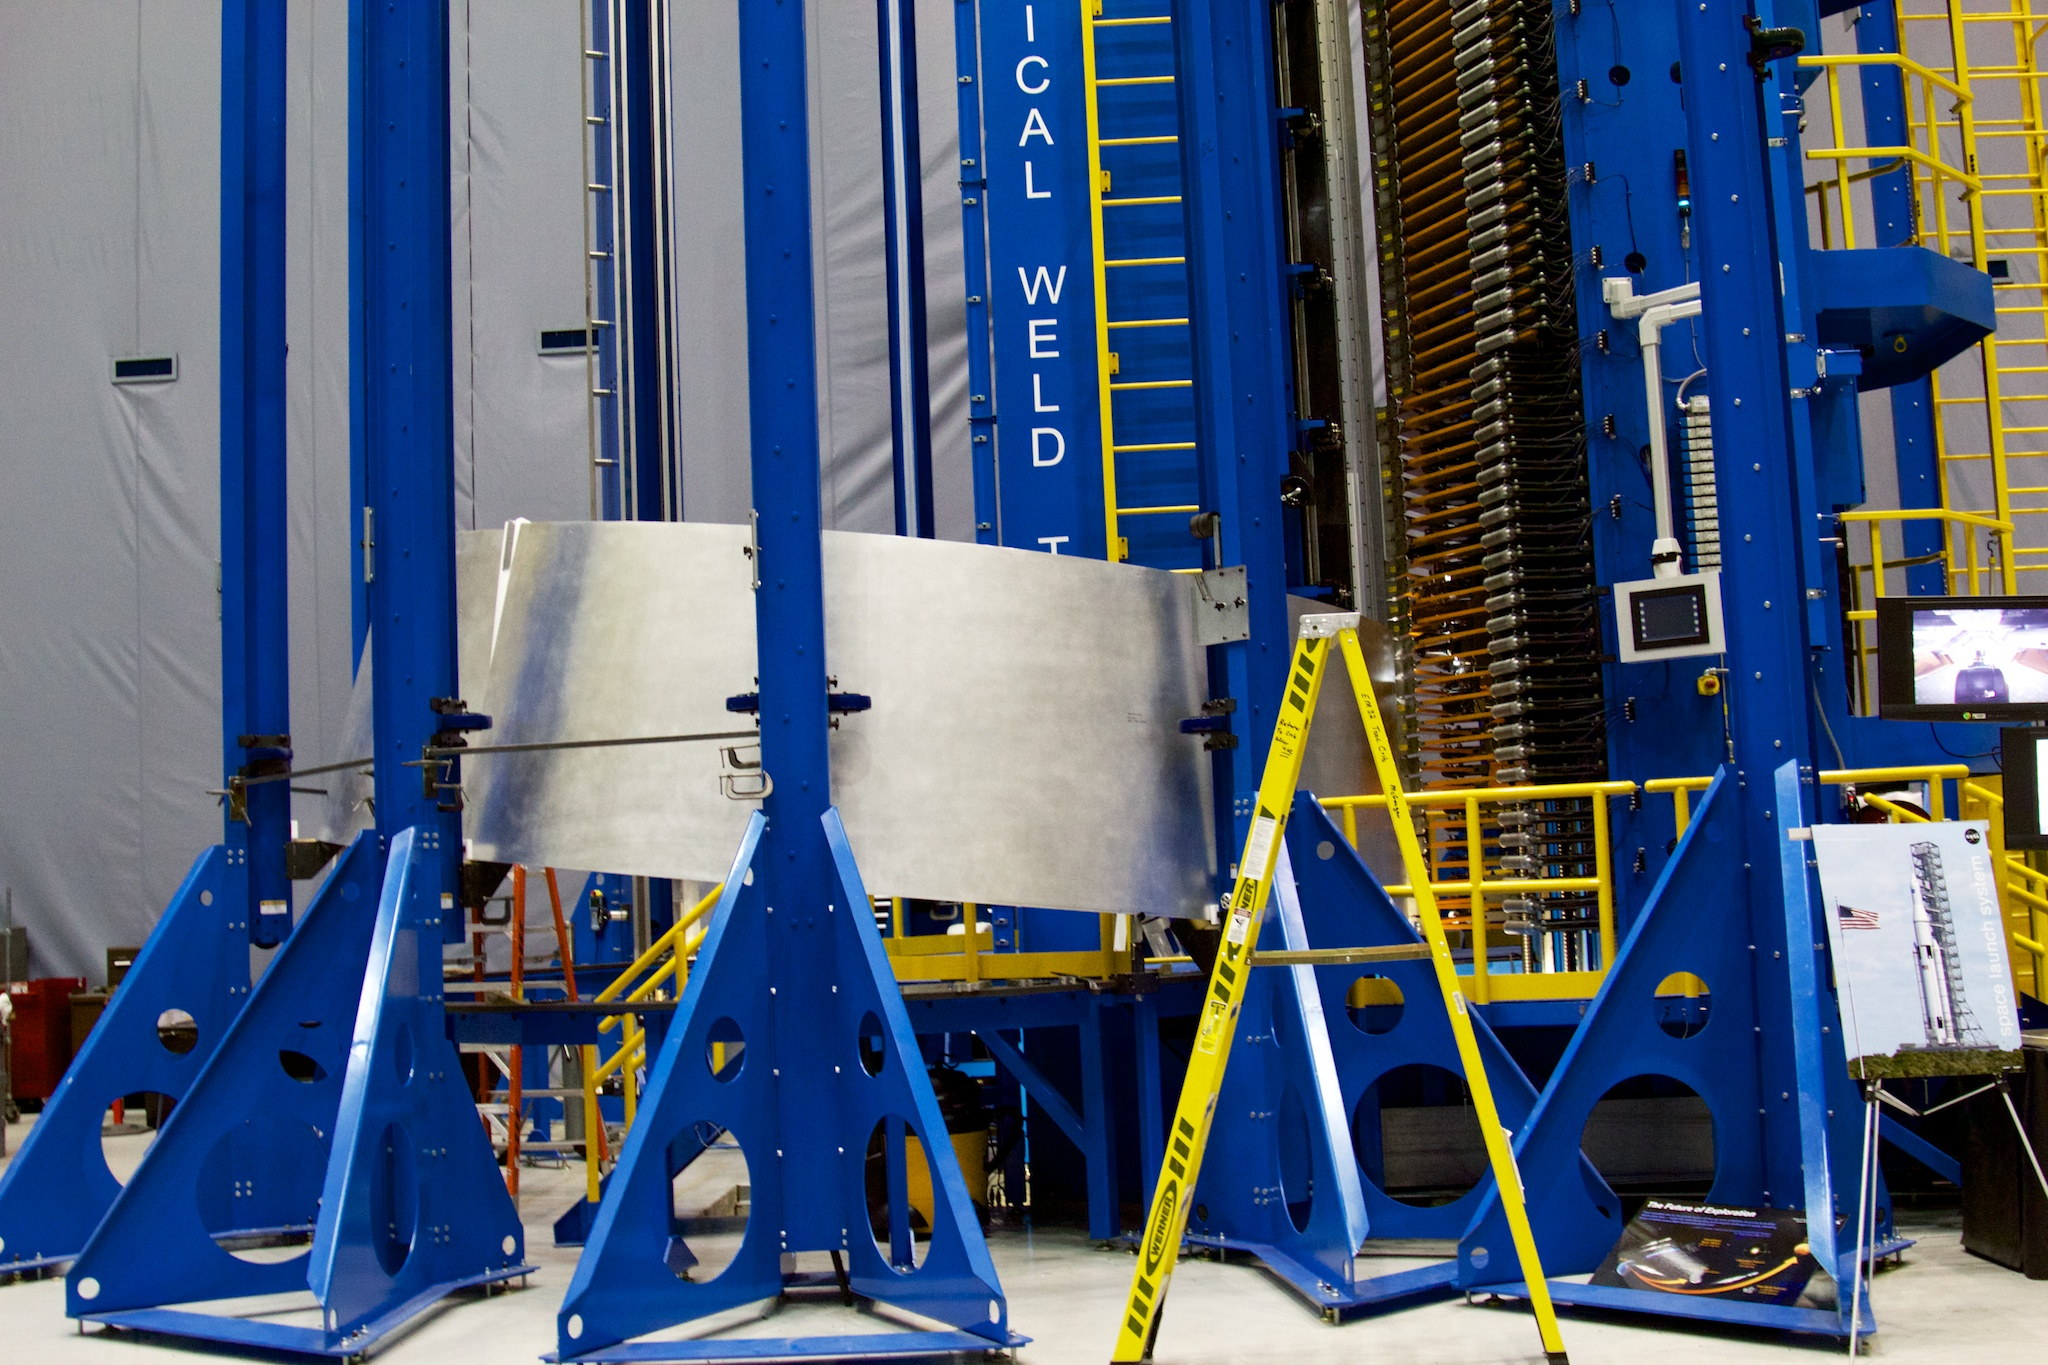 "The Vertical Weld Tool at the Marshal Space Flight Center, which uses <a href=""https://en.wikipedia.org/wiki/Friction_stir_welding"">friction stir welding</a> to construct rocket segments. Dynetics is using the same techniques for its cryogenic tankage."